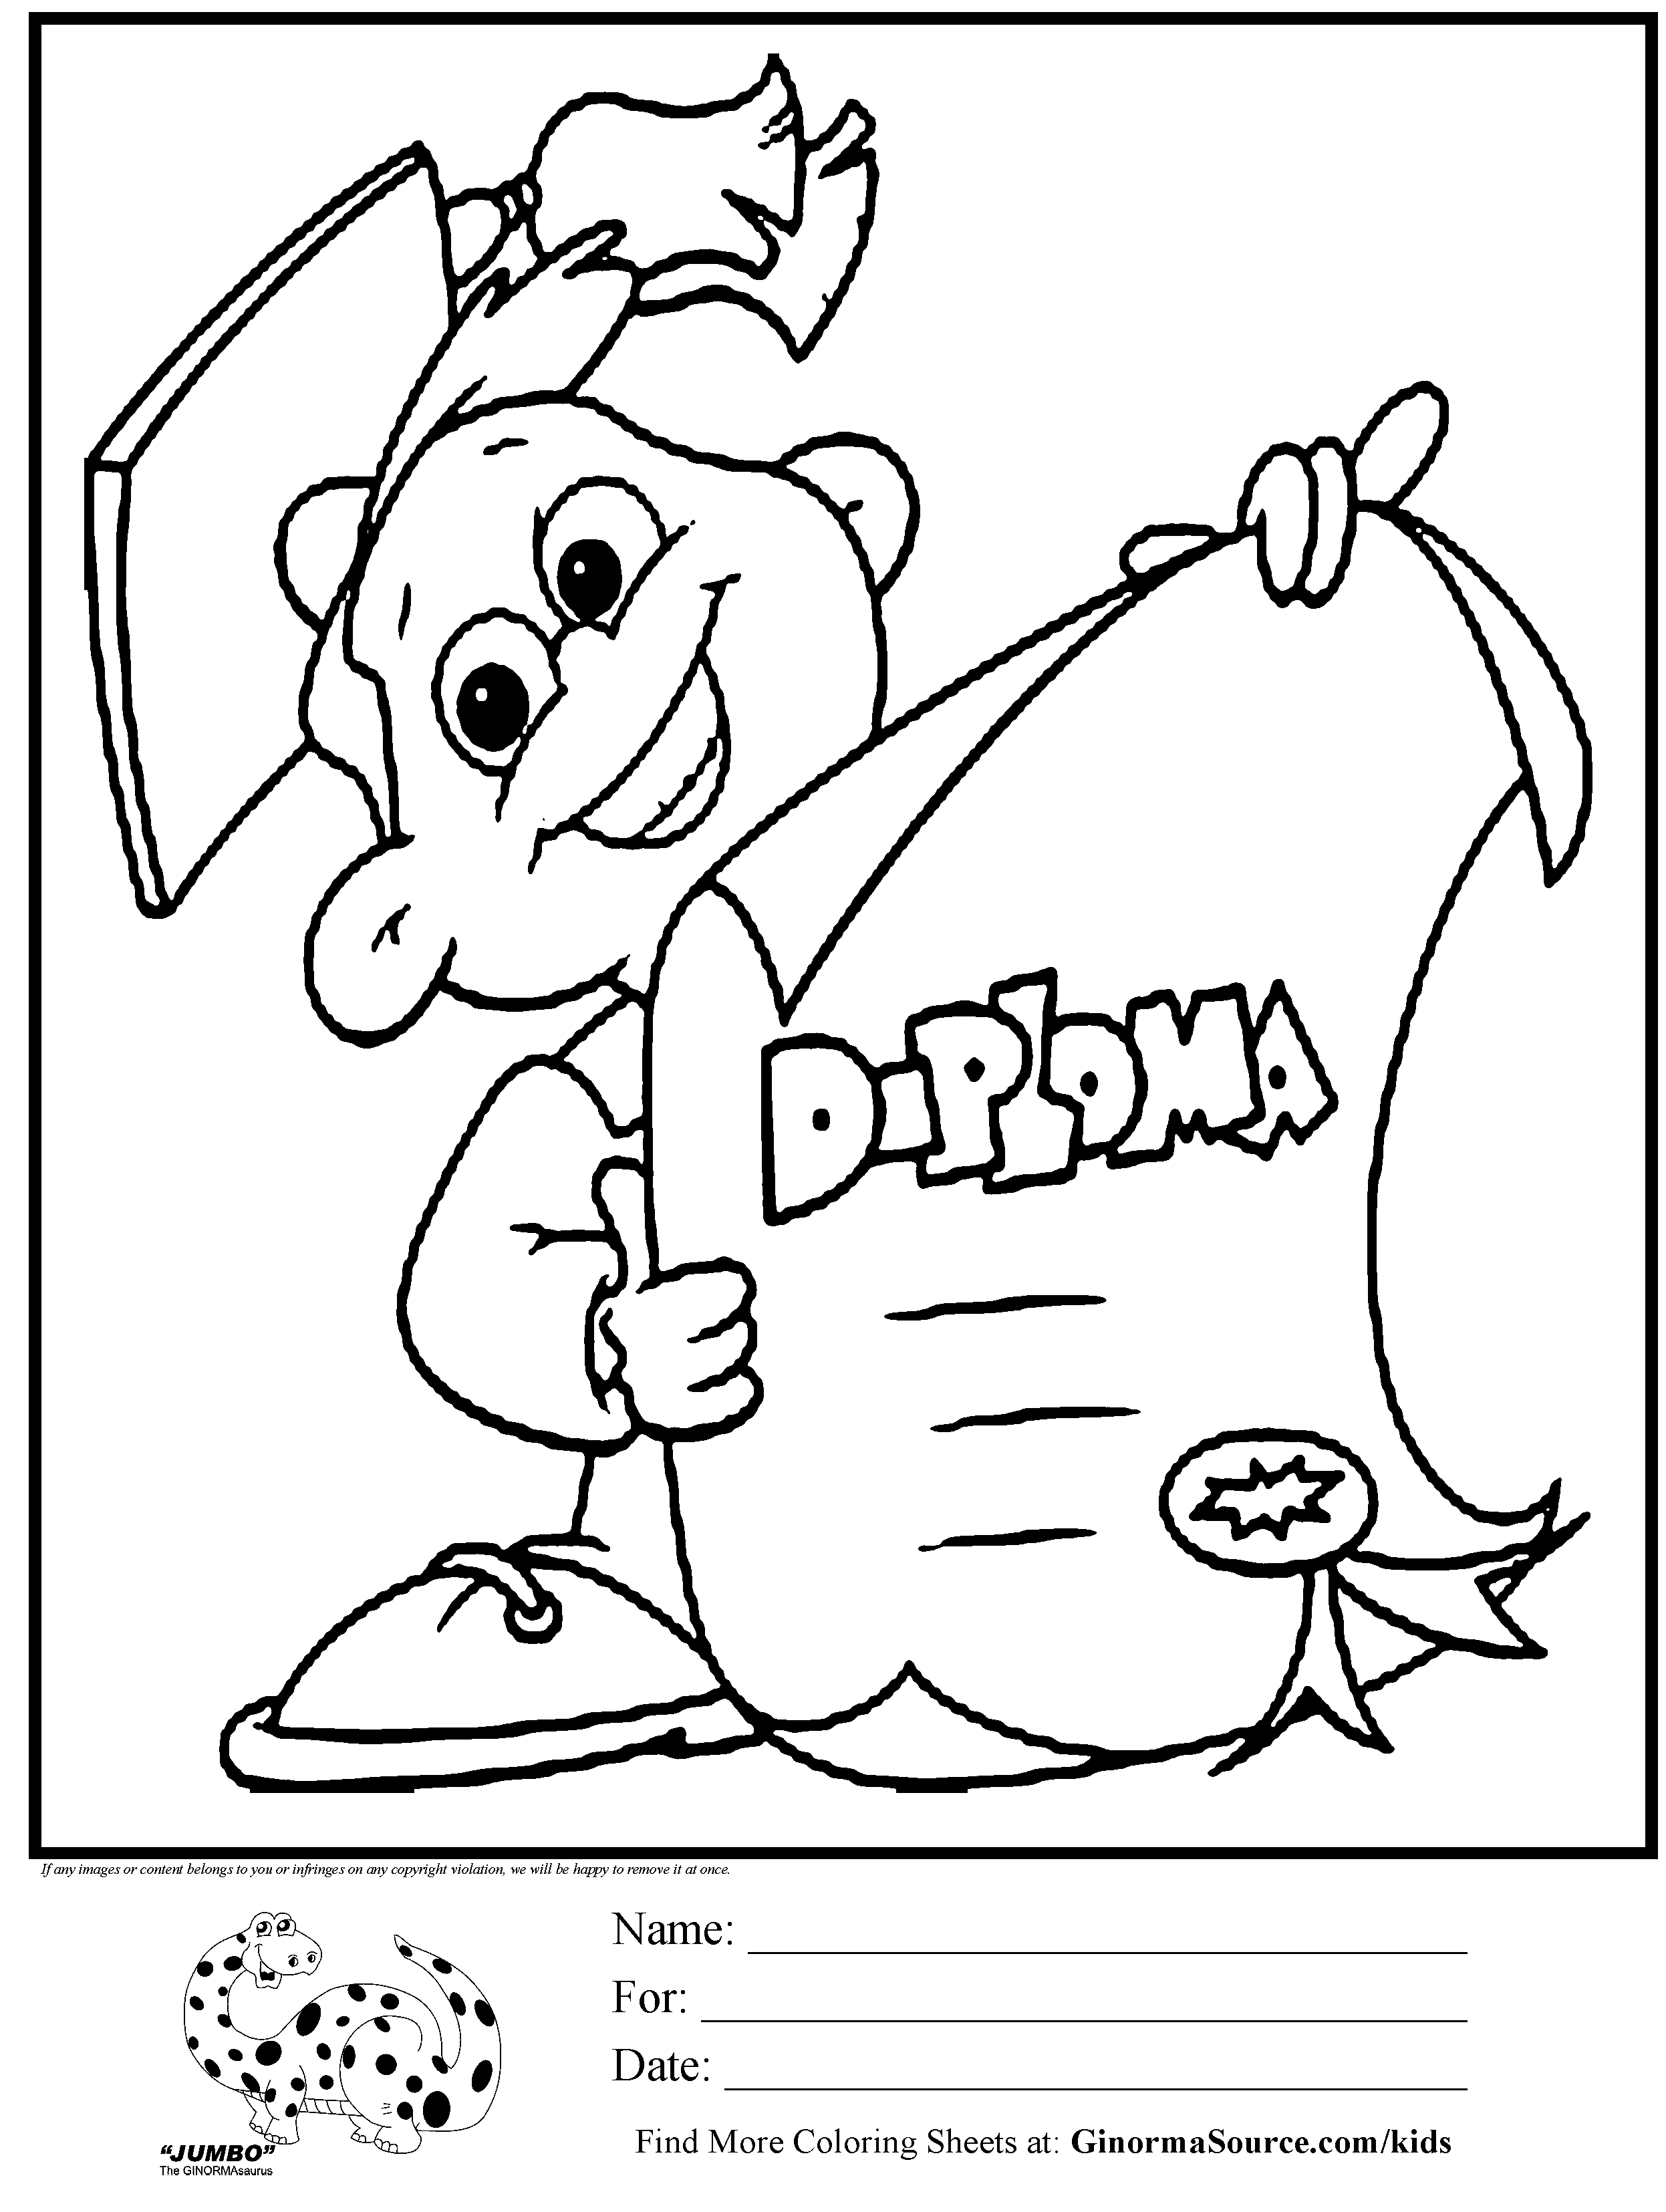 Coloring pages for kindergarten graduation - Kindergarten diploma coloring page